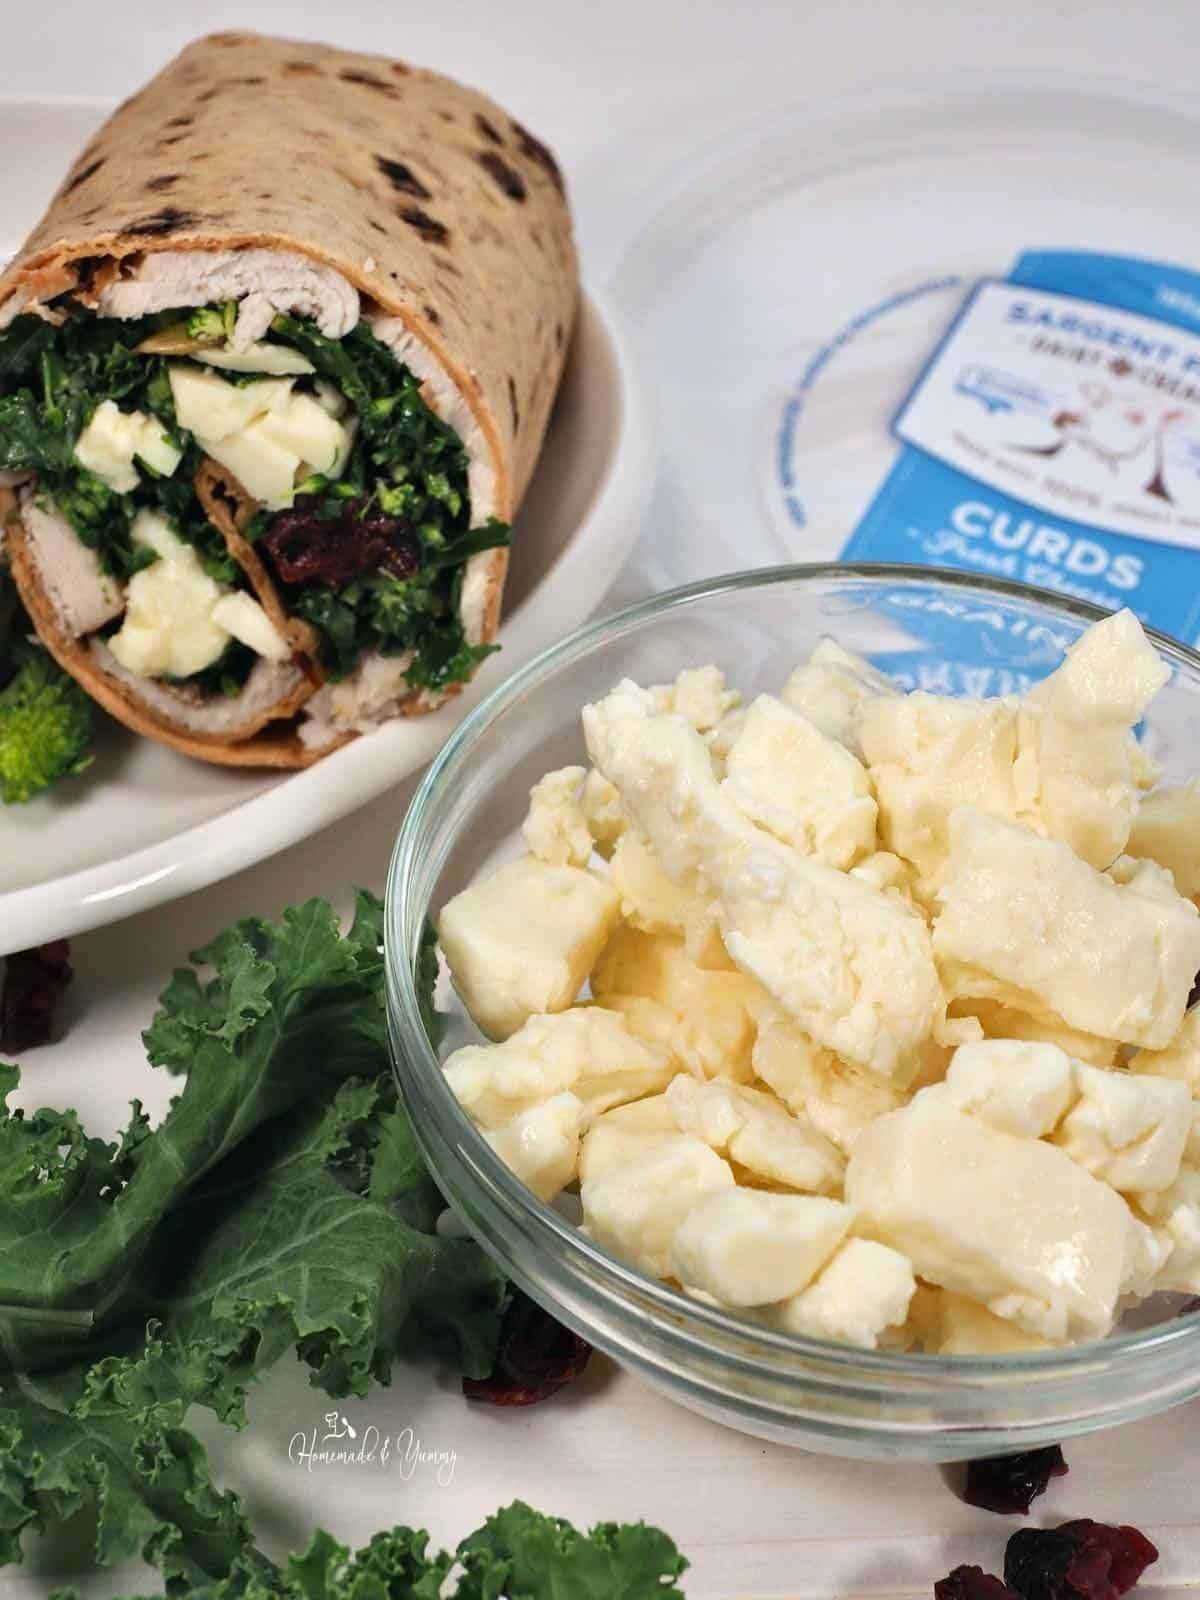 Wrap made with turkey and cheese curds.